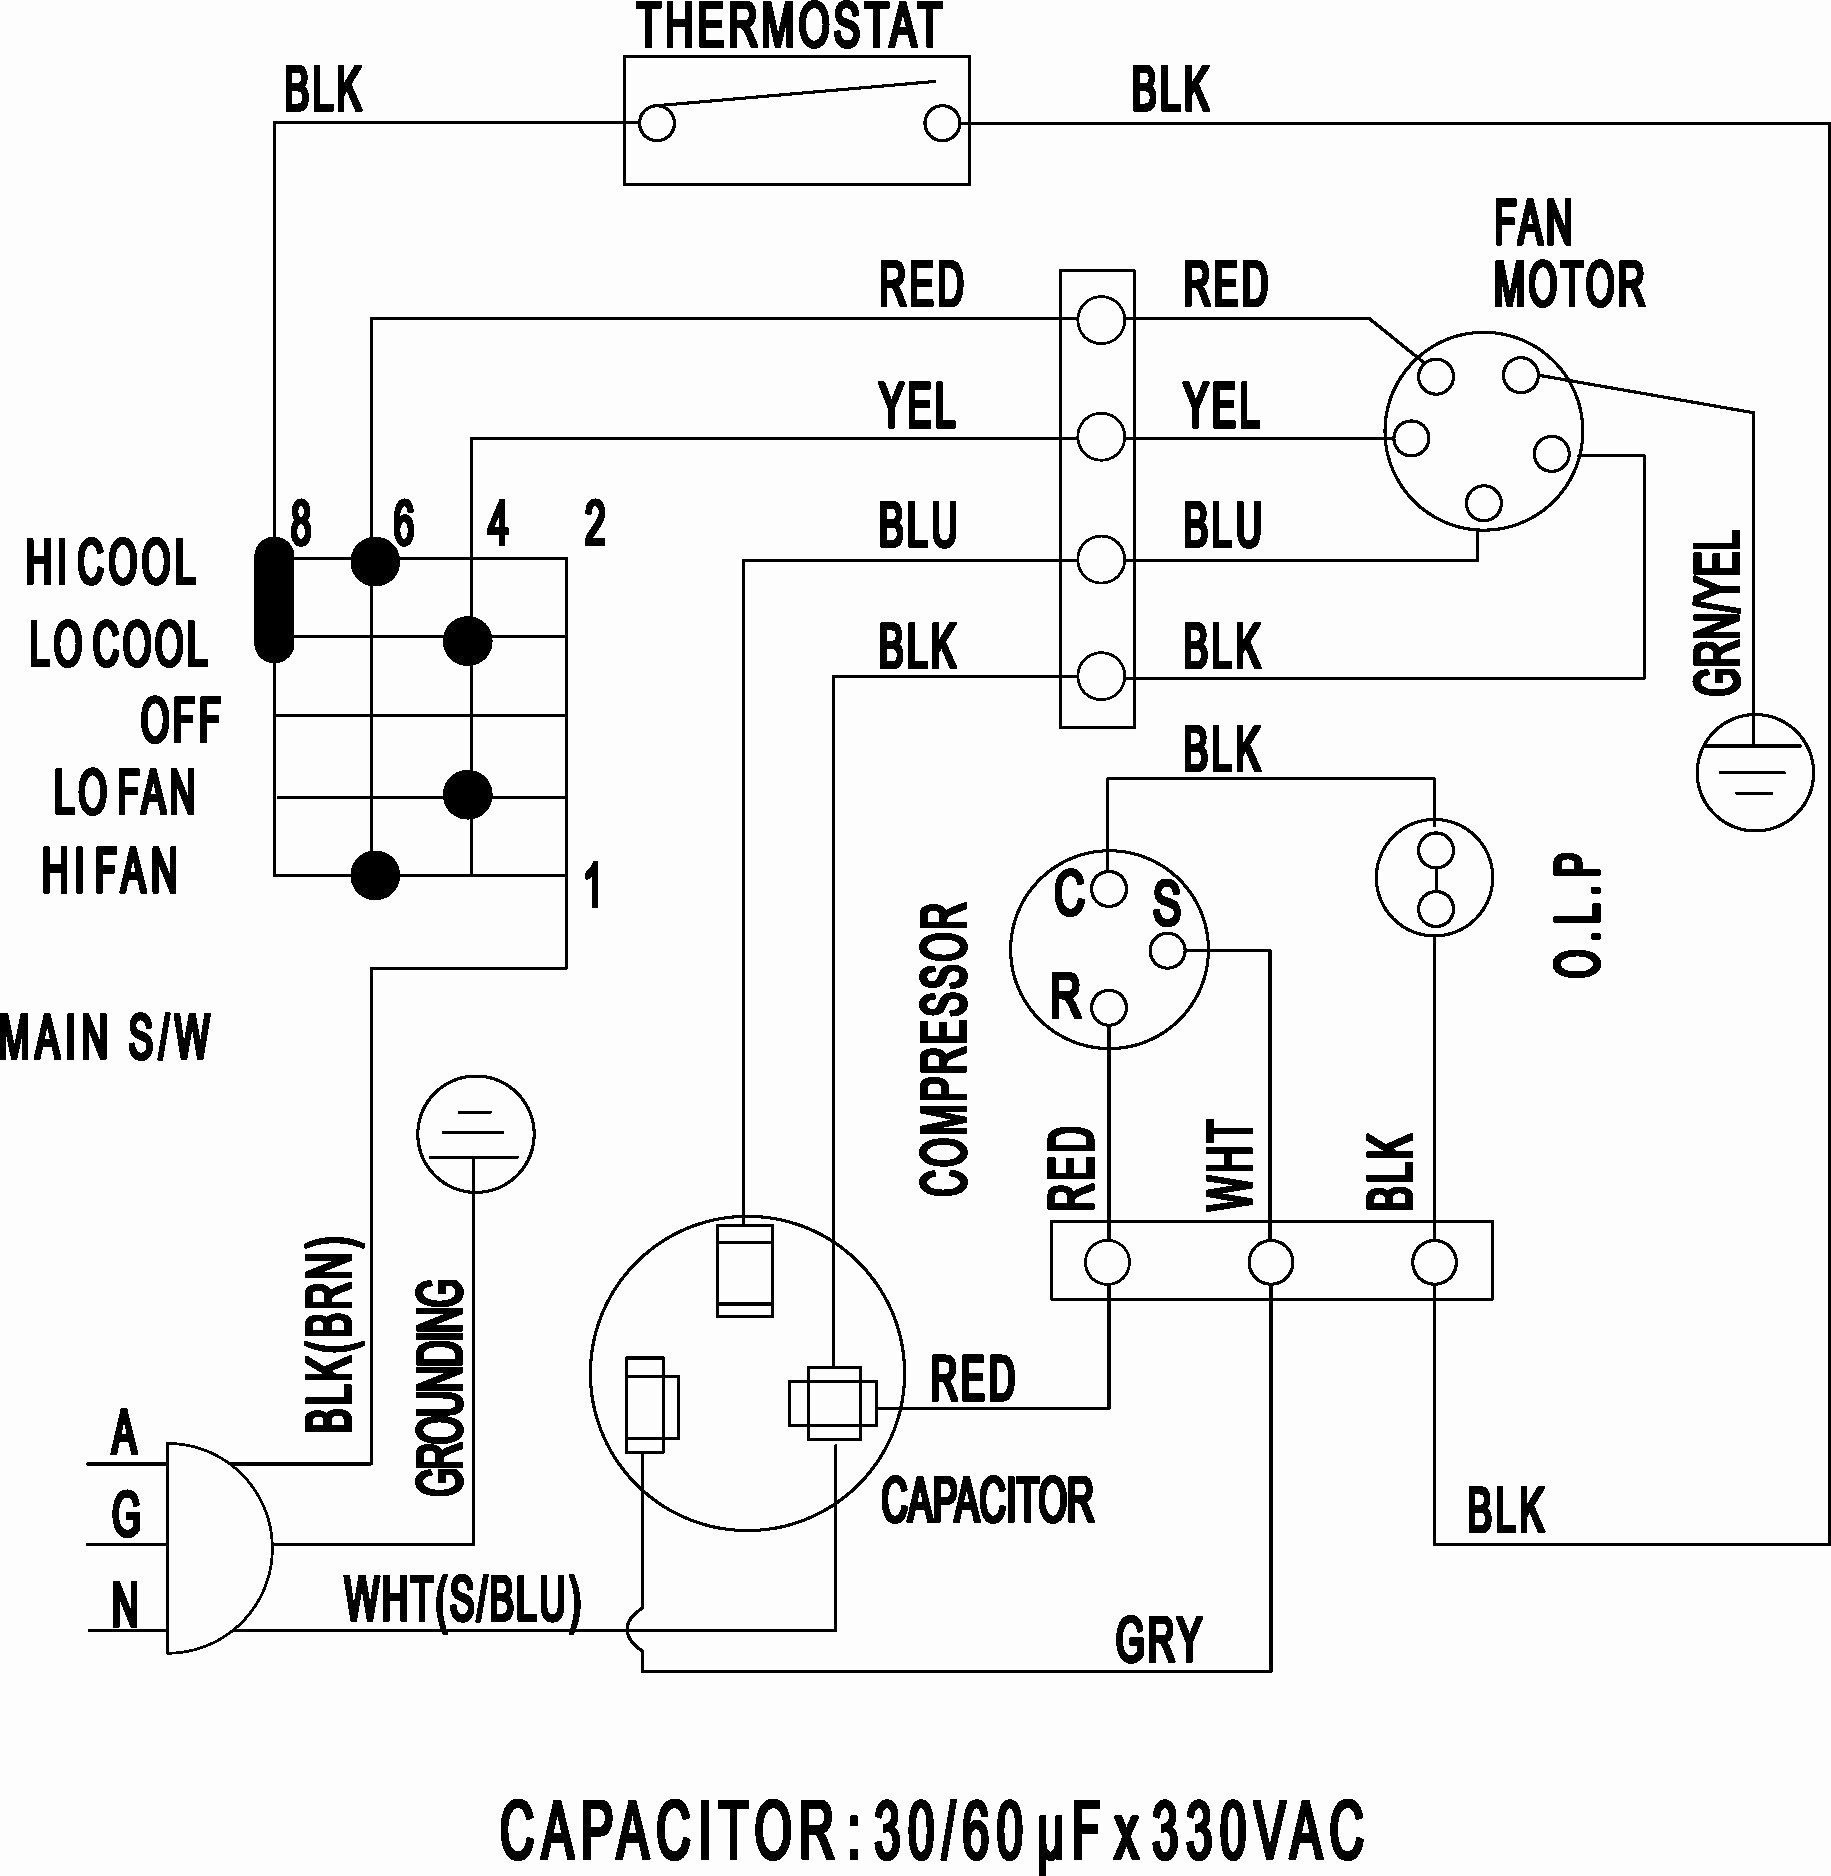 93 Acura Integra Sensor Diagram Free Download Wiring Diagram